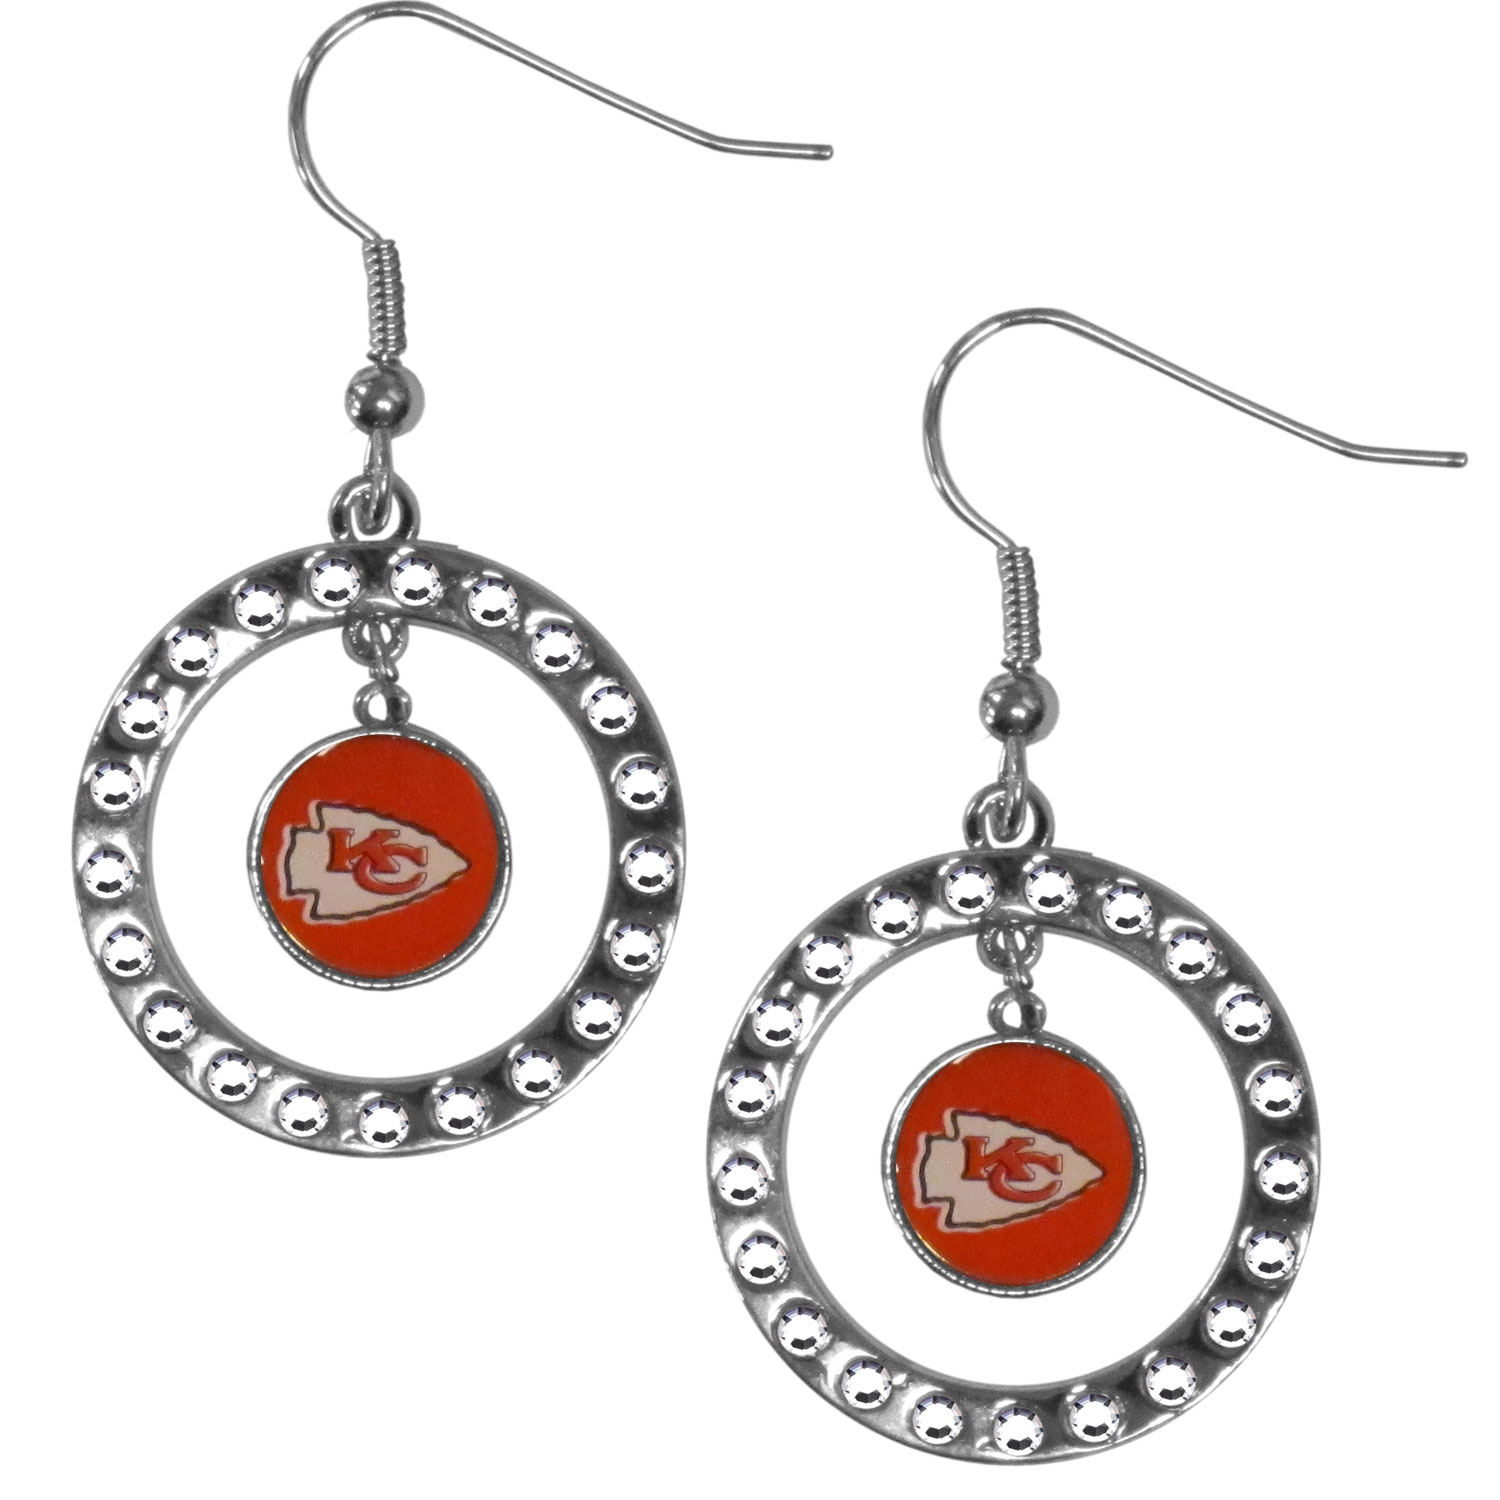 Kansas City Chiefs Rhinestone Hoop Earrings - Our officially licensed rhinestone hoop earrings comes on an hypo-allergenic fishhook posts  and features a hoop covered in rhinestones with a high polish chrome finish and a Kansas City Chiefs logo dangling in the center.